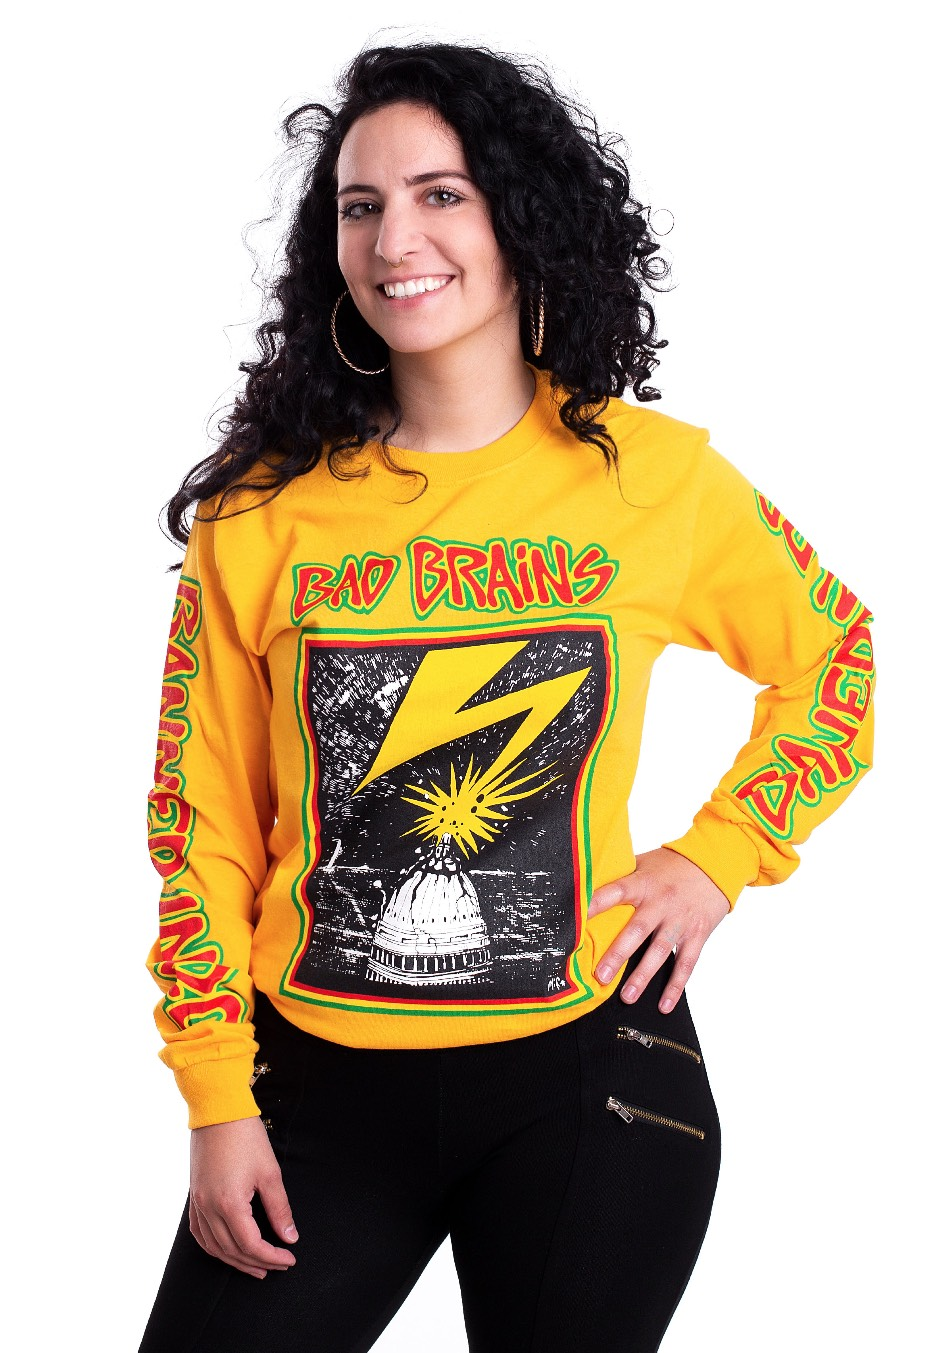 b4aa9a685f99 Bad Brains - Capitol Yellow - Longsleeve - Official Hardcore Merchandise  Shop - Impericon.com US